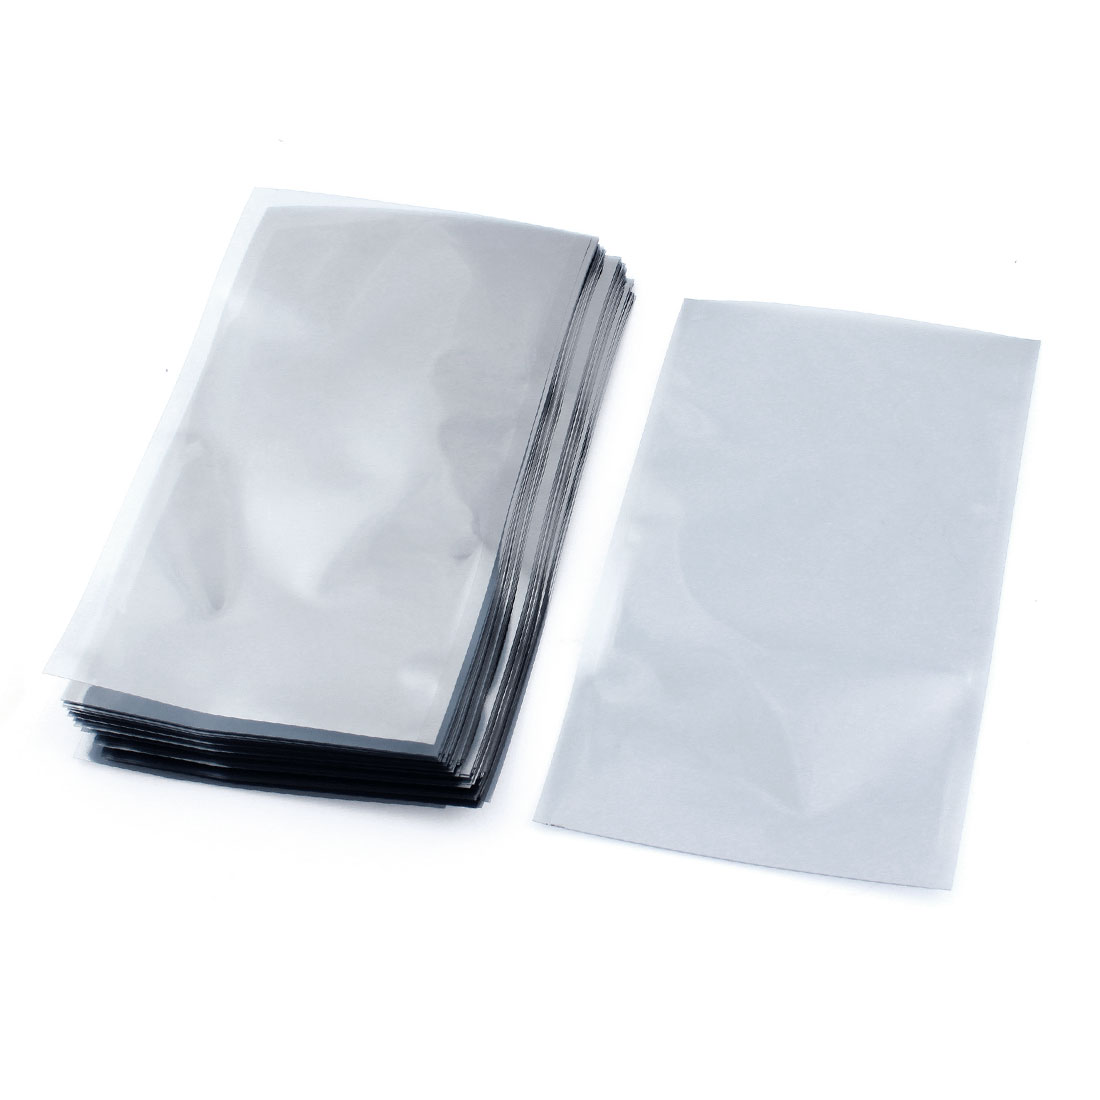 100 Pcs 12cmx20cm Open Top Rectangle Plastic Anti-static Anti Static Shielding Bags Packagings for Electronic Components